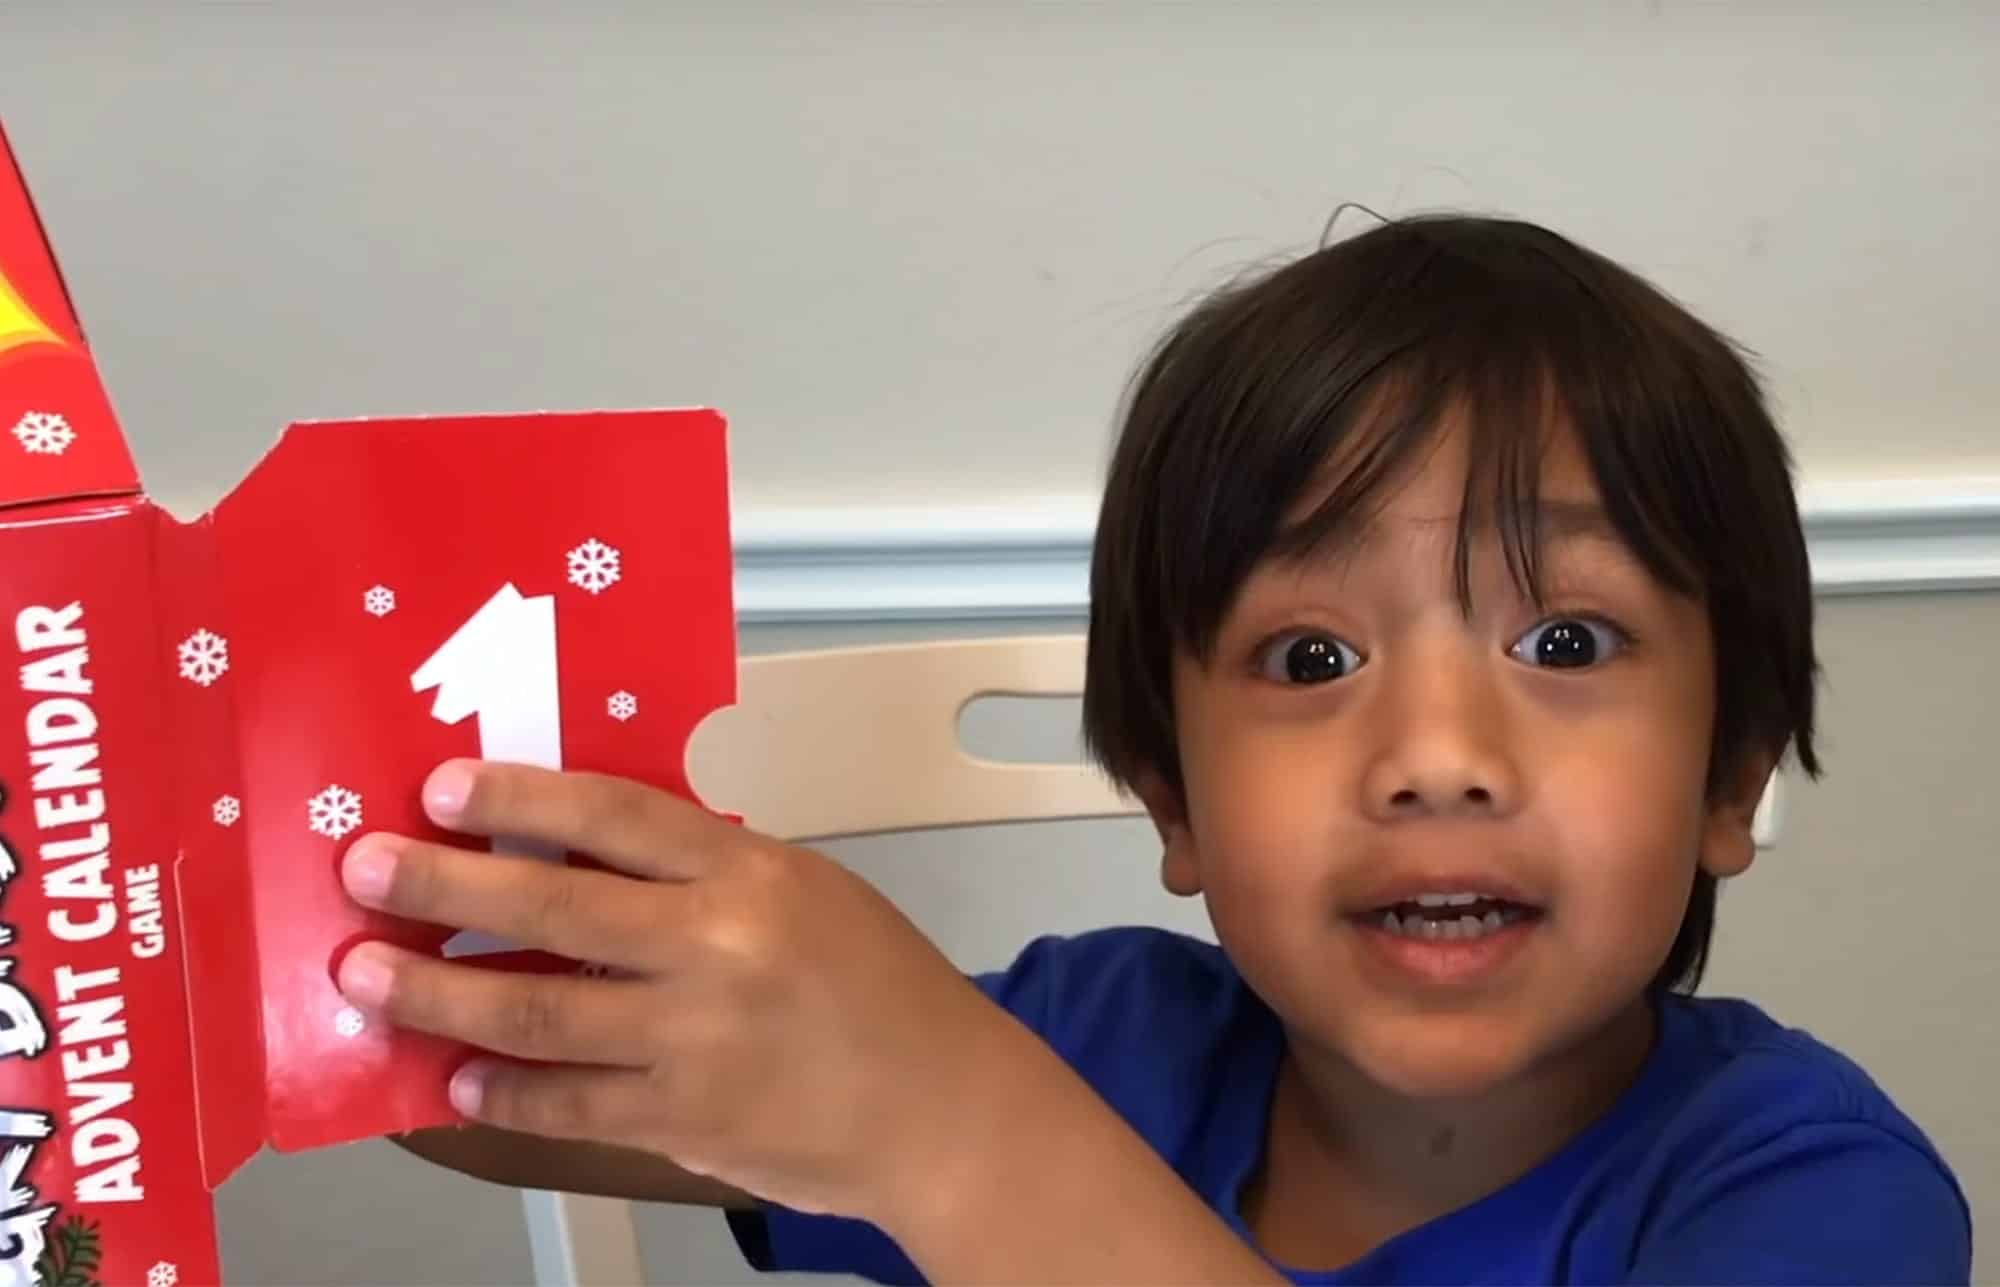 This 6-year-old boy is making $11 million a year on YouTube